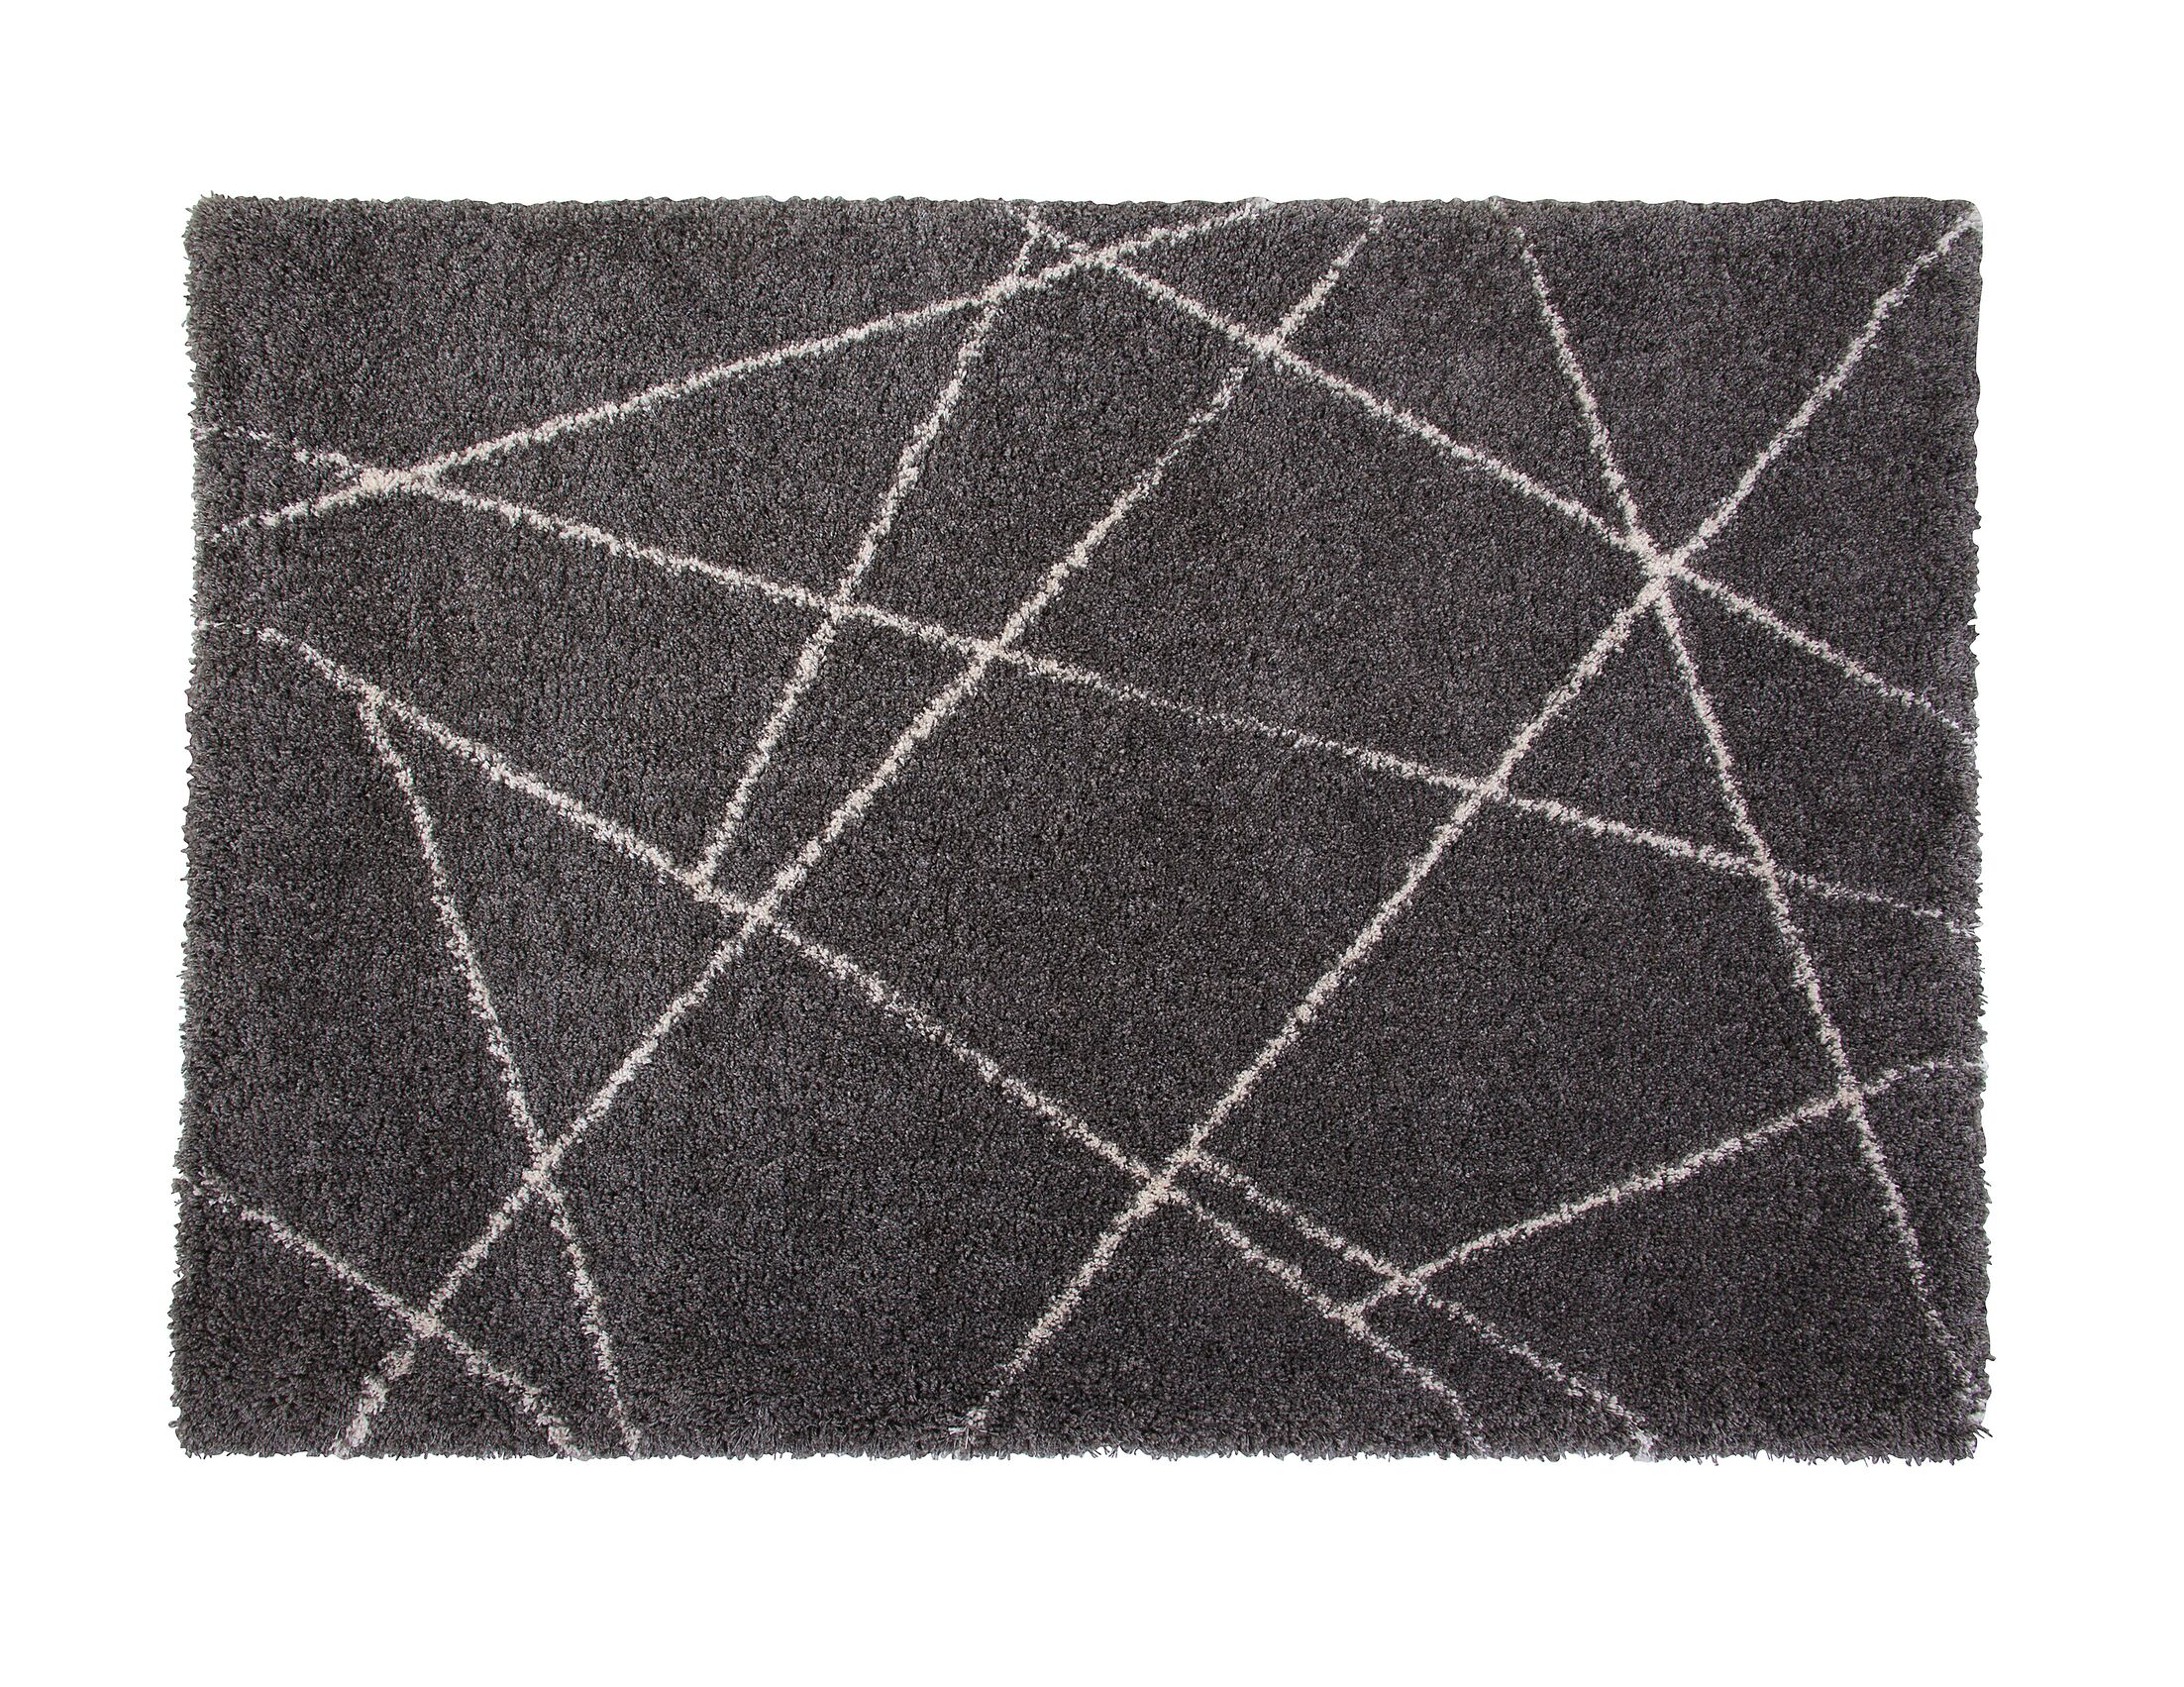 Tefft Charcoal/Ivory Area Rug Rug Size: Rectangle 8' x 10'